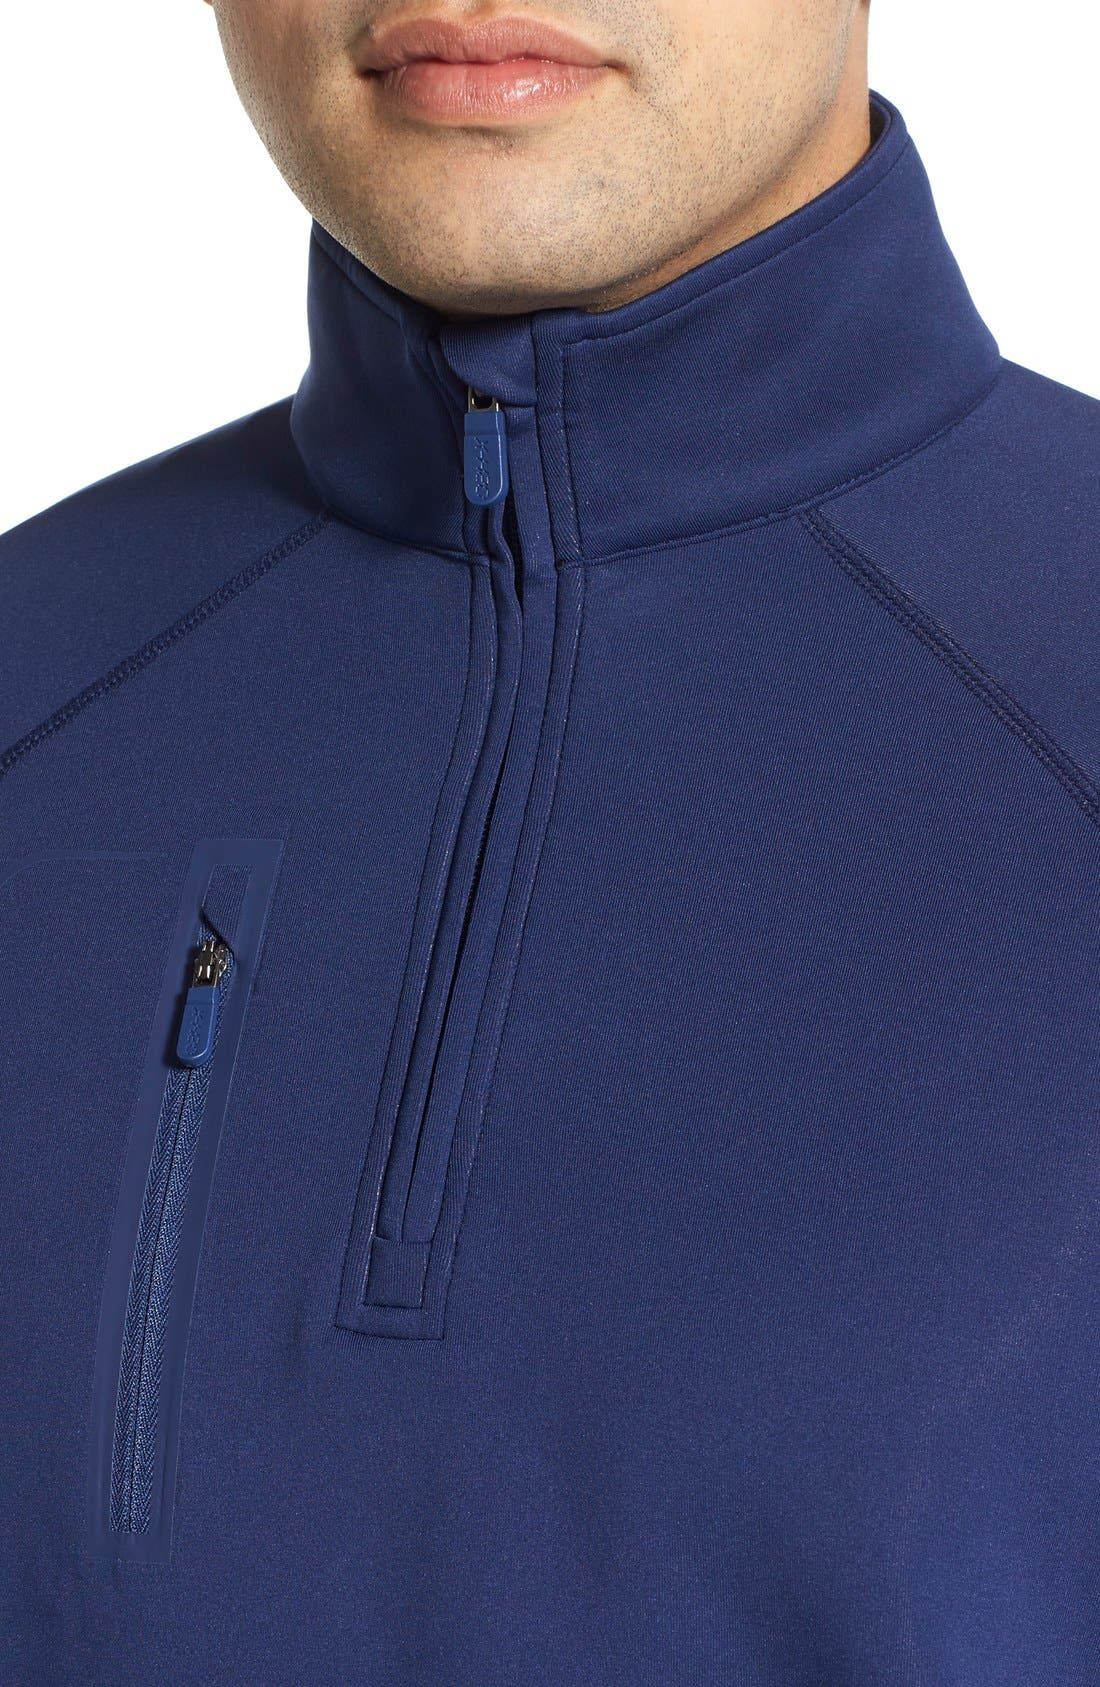 XH2O Crawford Stretch Quarter Zip Golf Pullover,                             Alternate thumbnail 48, color,